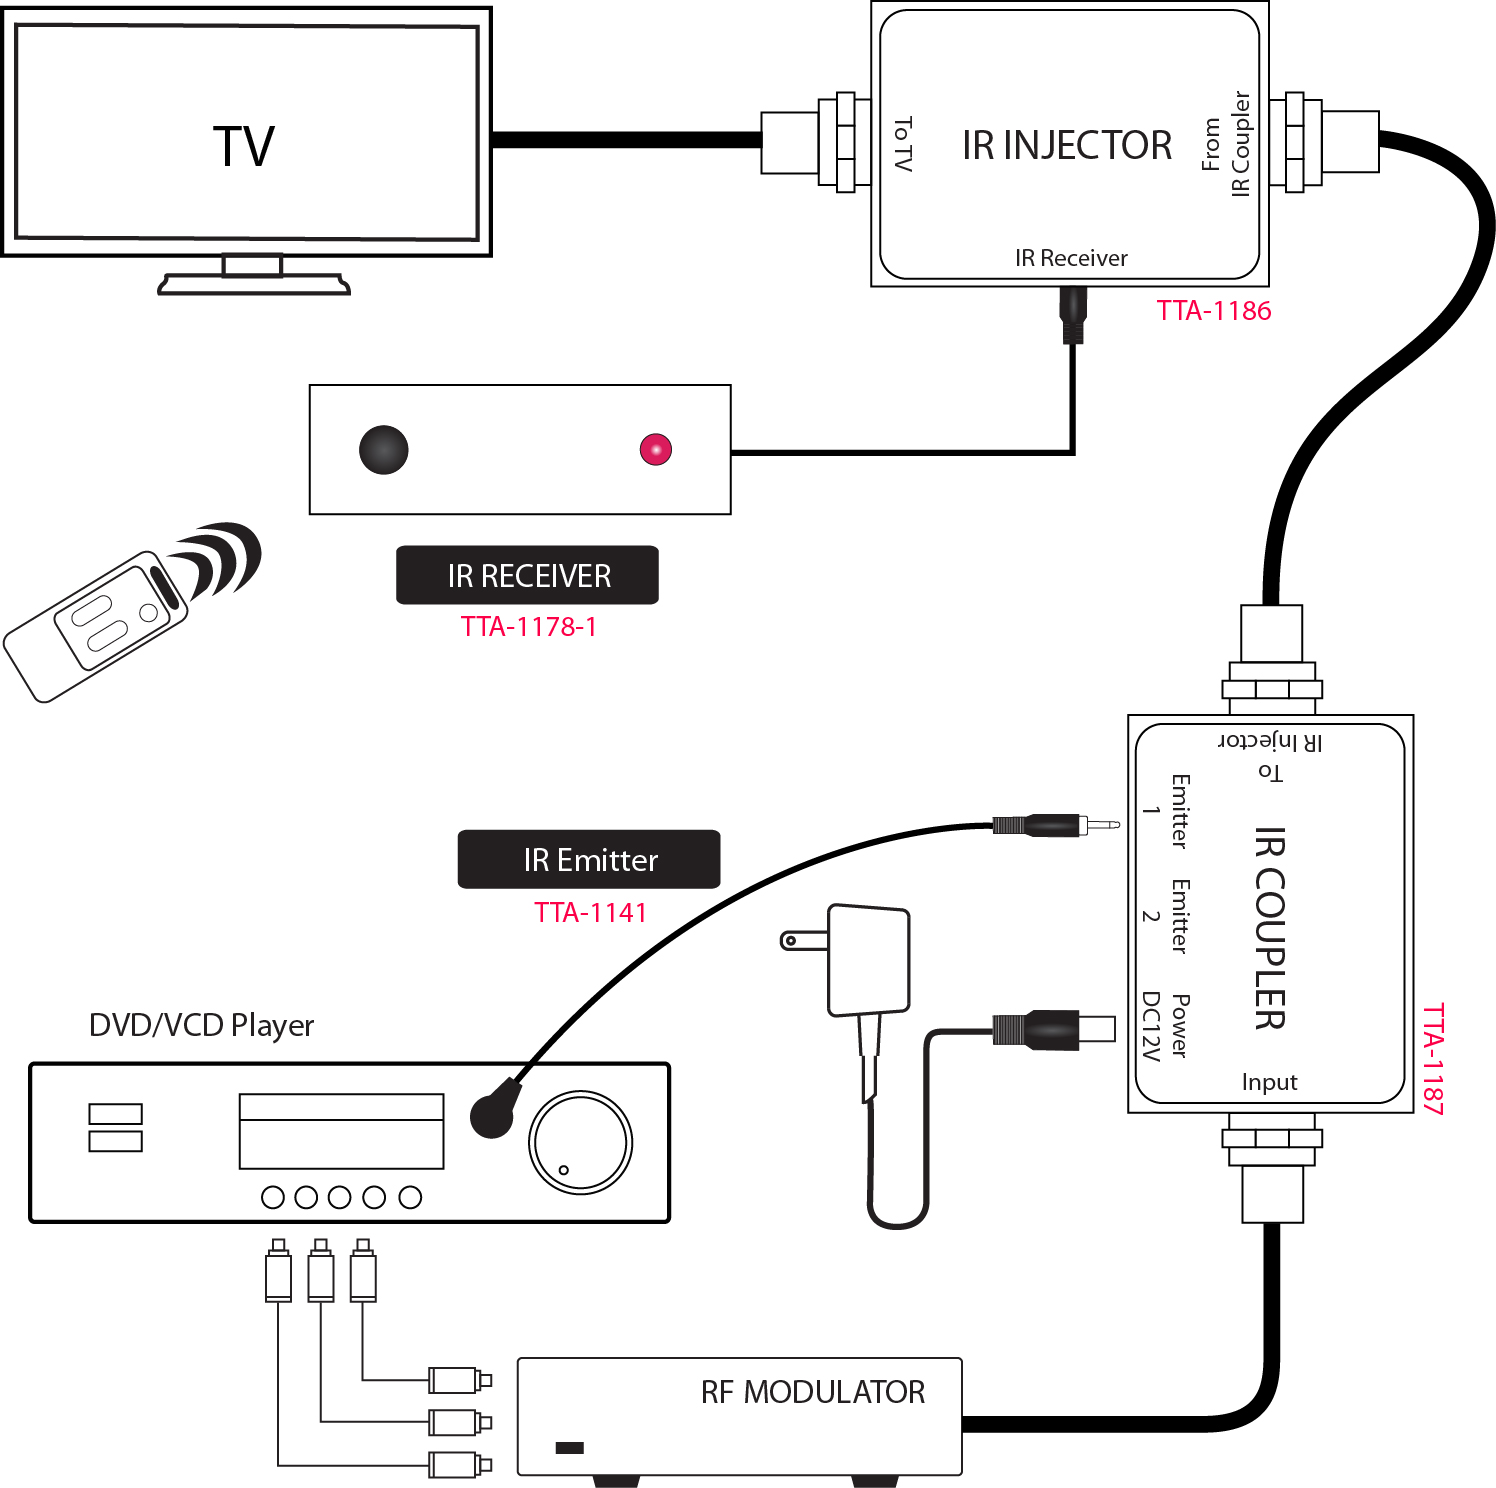 [DIAGRAM] Wiring Diagram For Coaxial Cable FULL Version HD